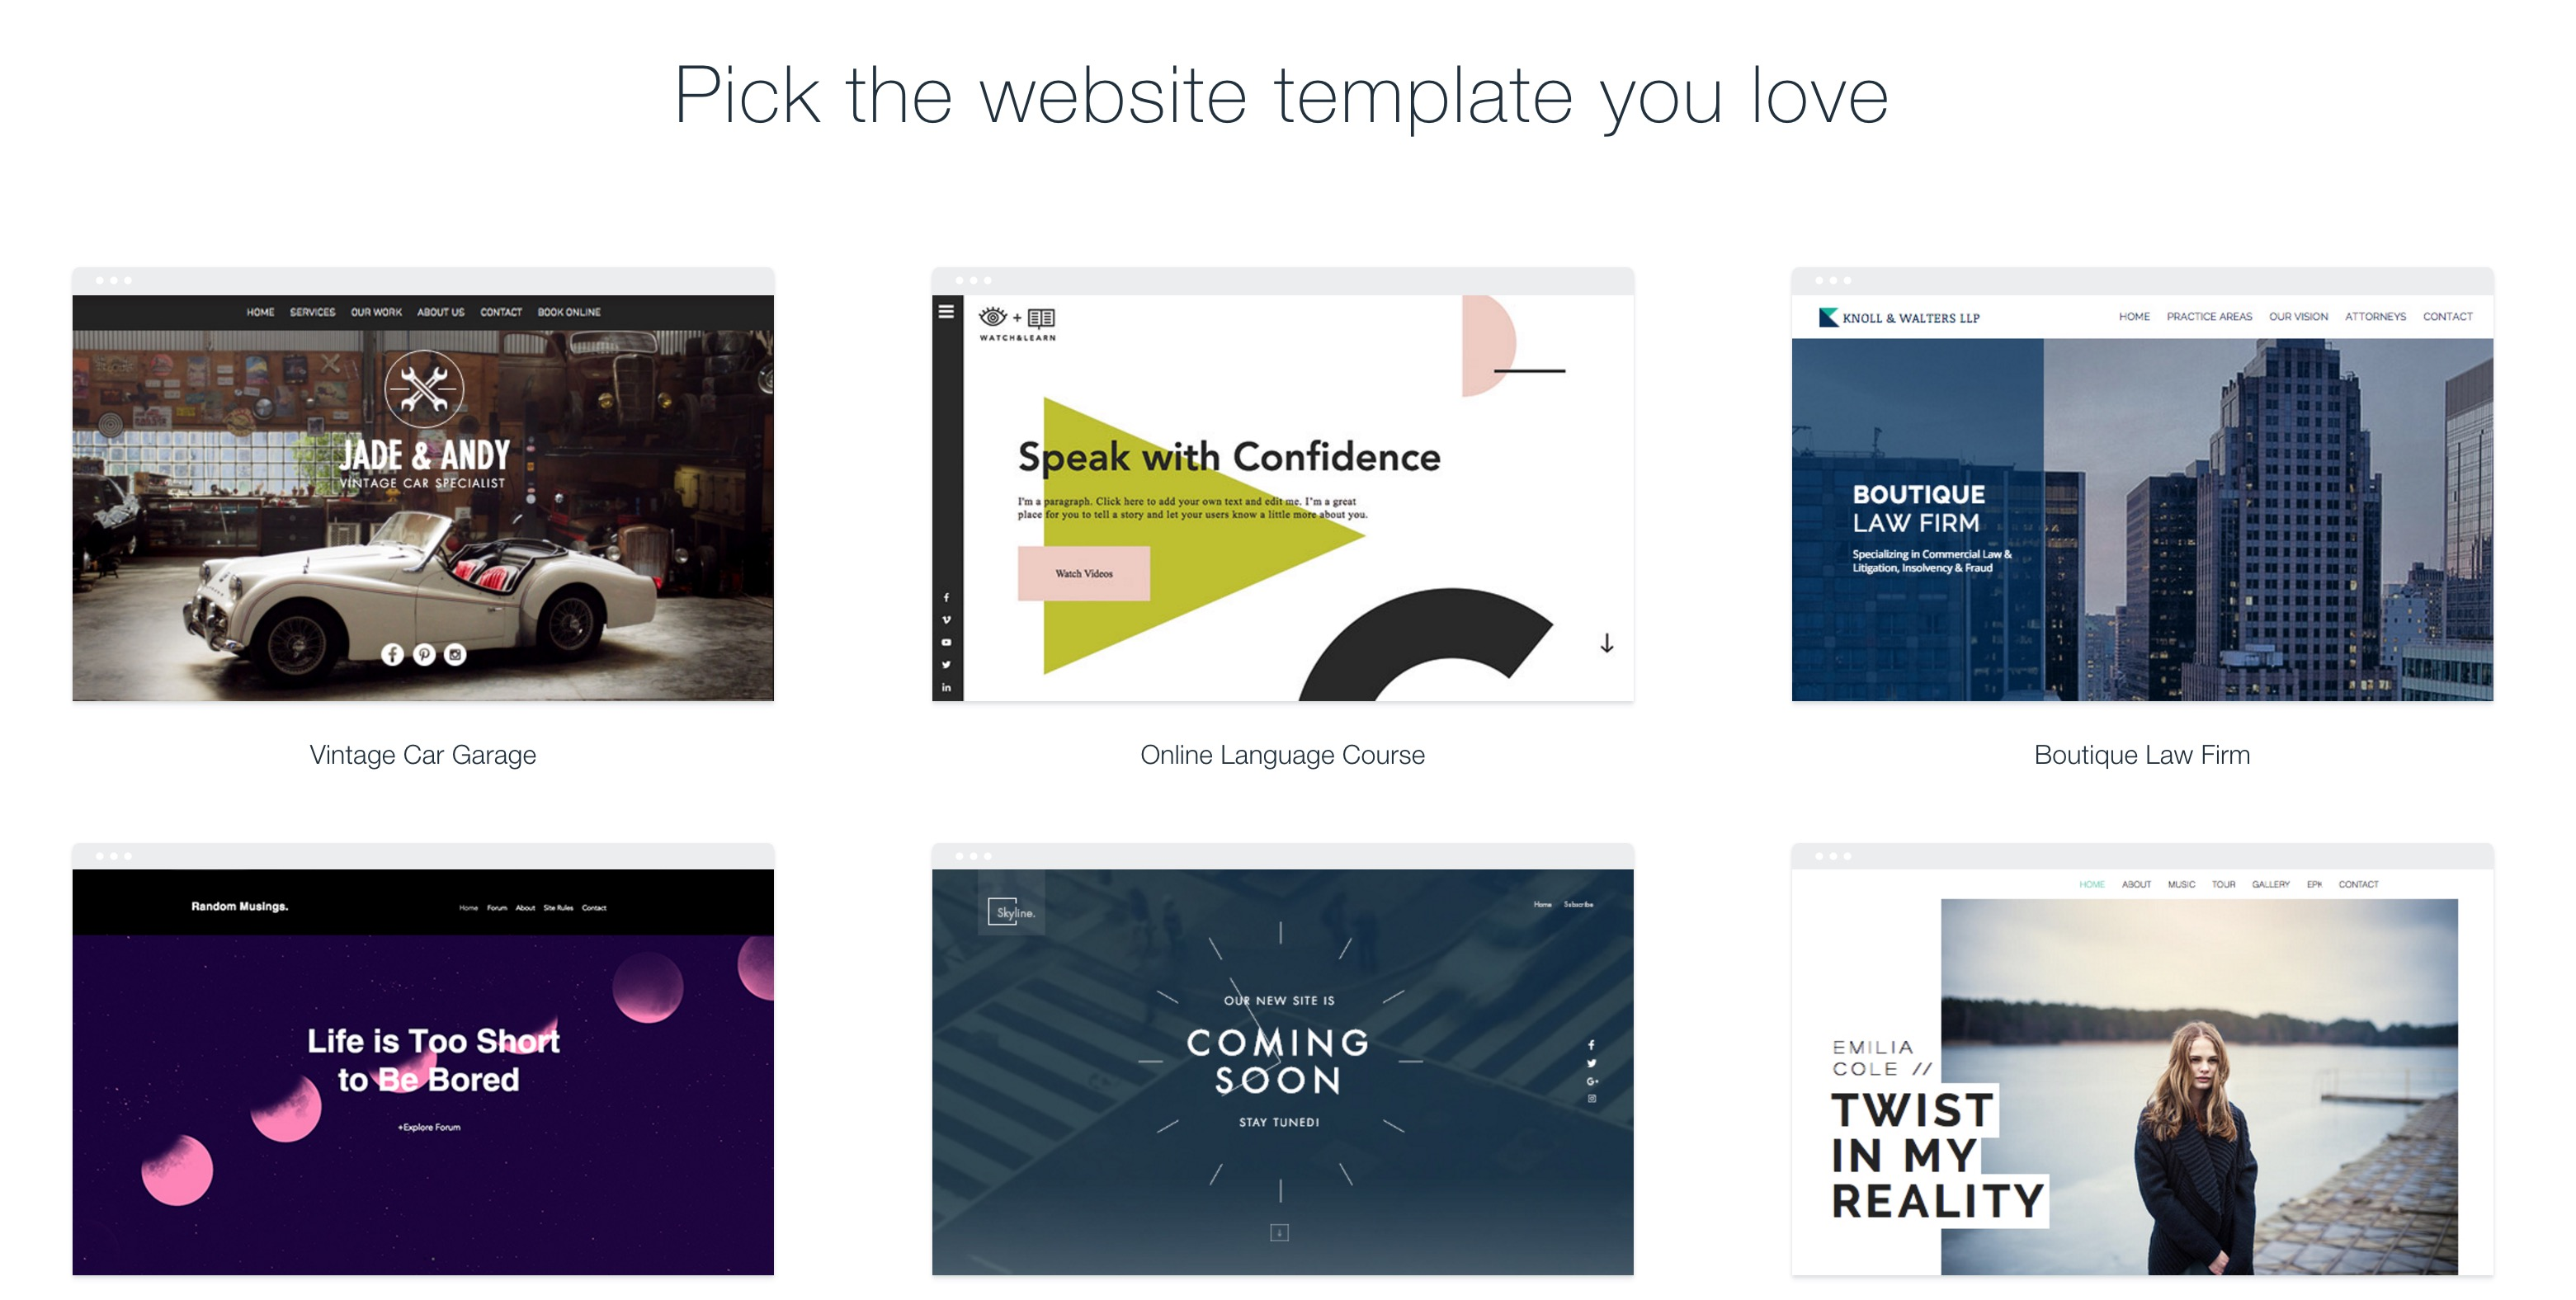 creating a site using website templates a definitive guide